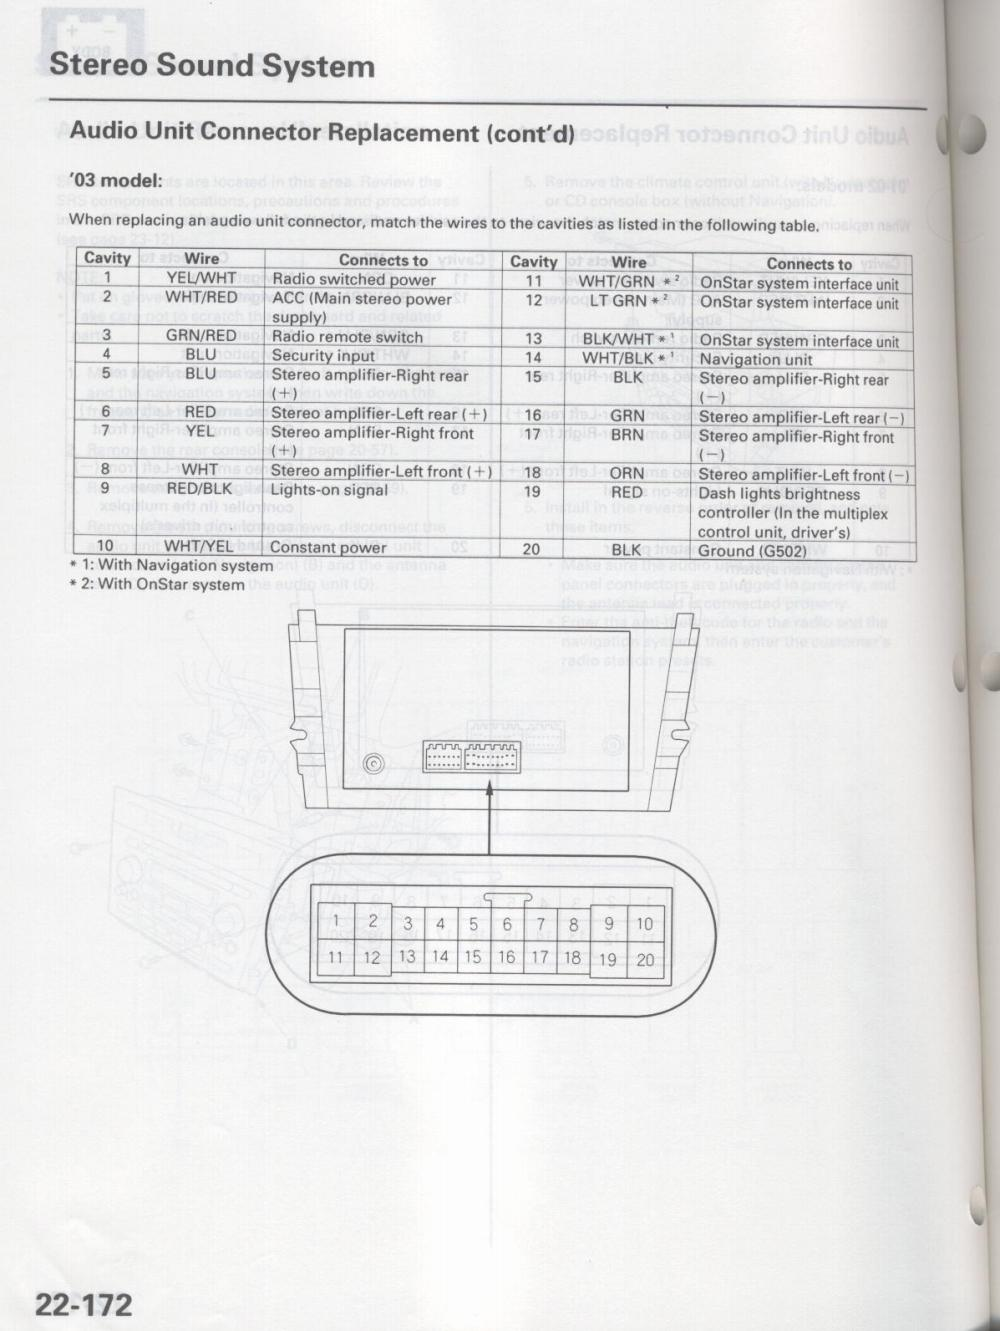 04 Acura Tl Fuse Diagram Wiring Diagrams 2004 Box Radio For 2000 Hp Photosmart Printer